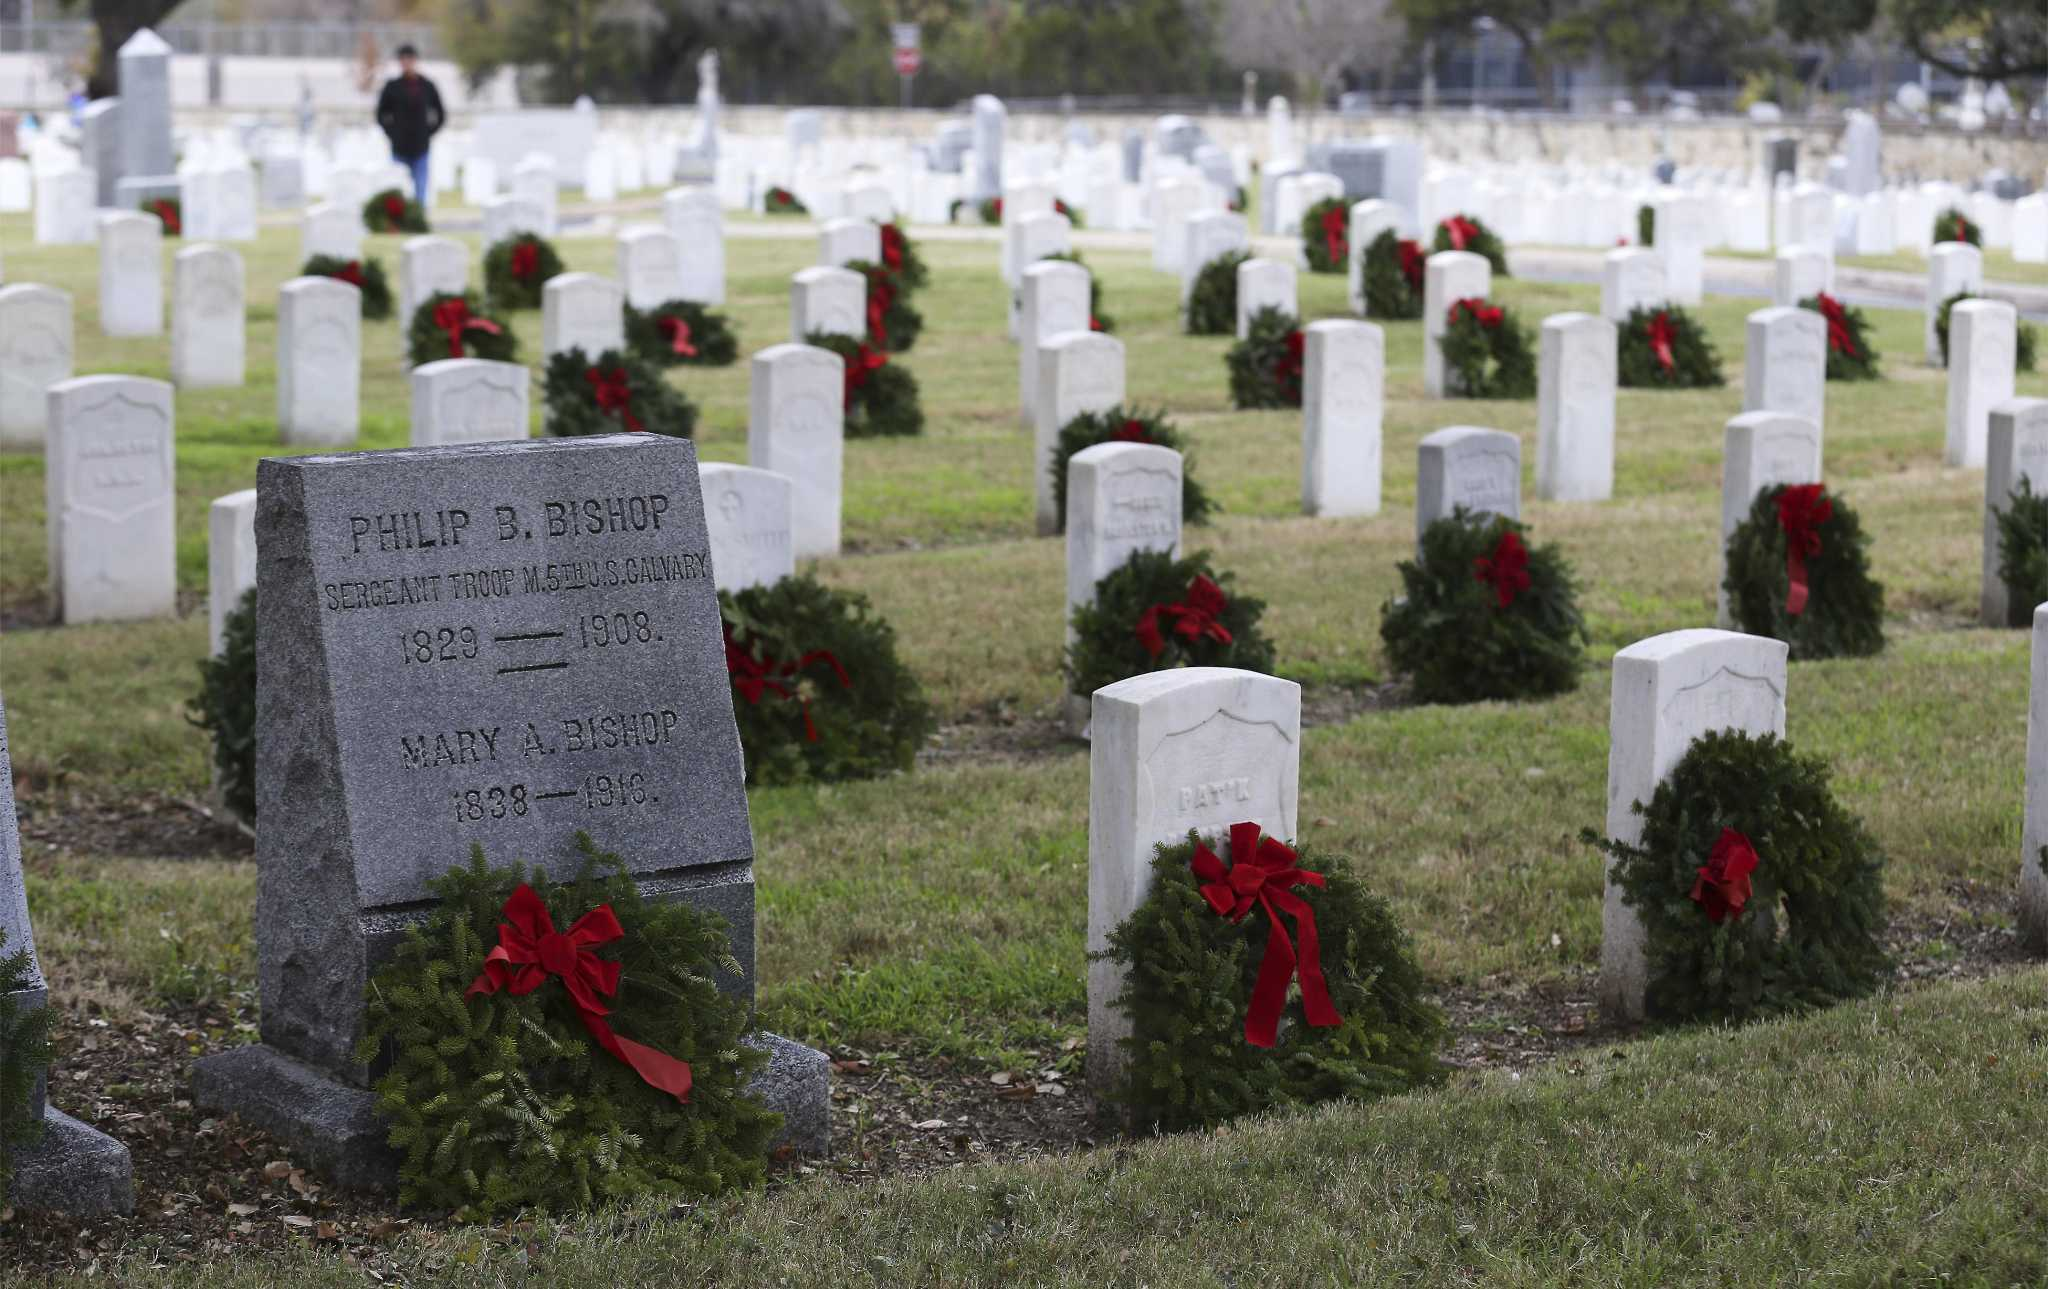 Volunteers gathered at two national cemeteries in San Antonio to lay wreaths on veterans' graves